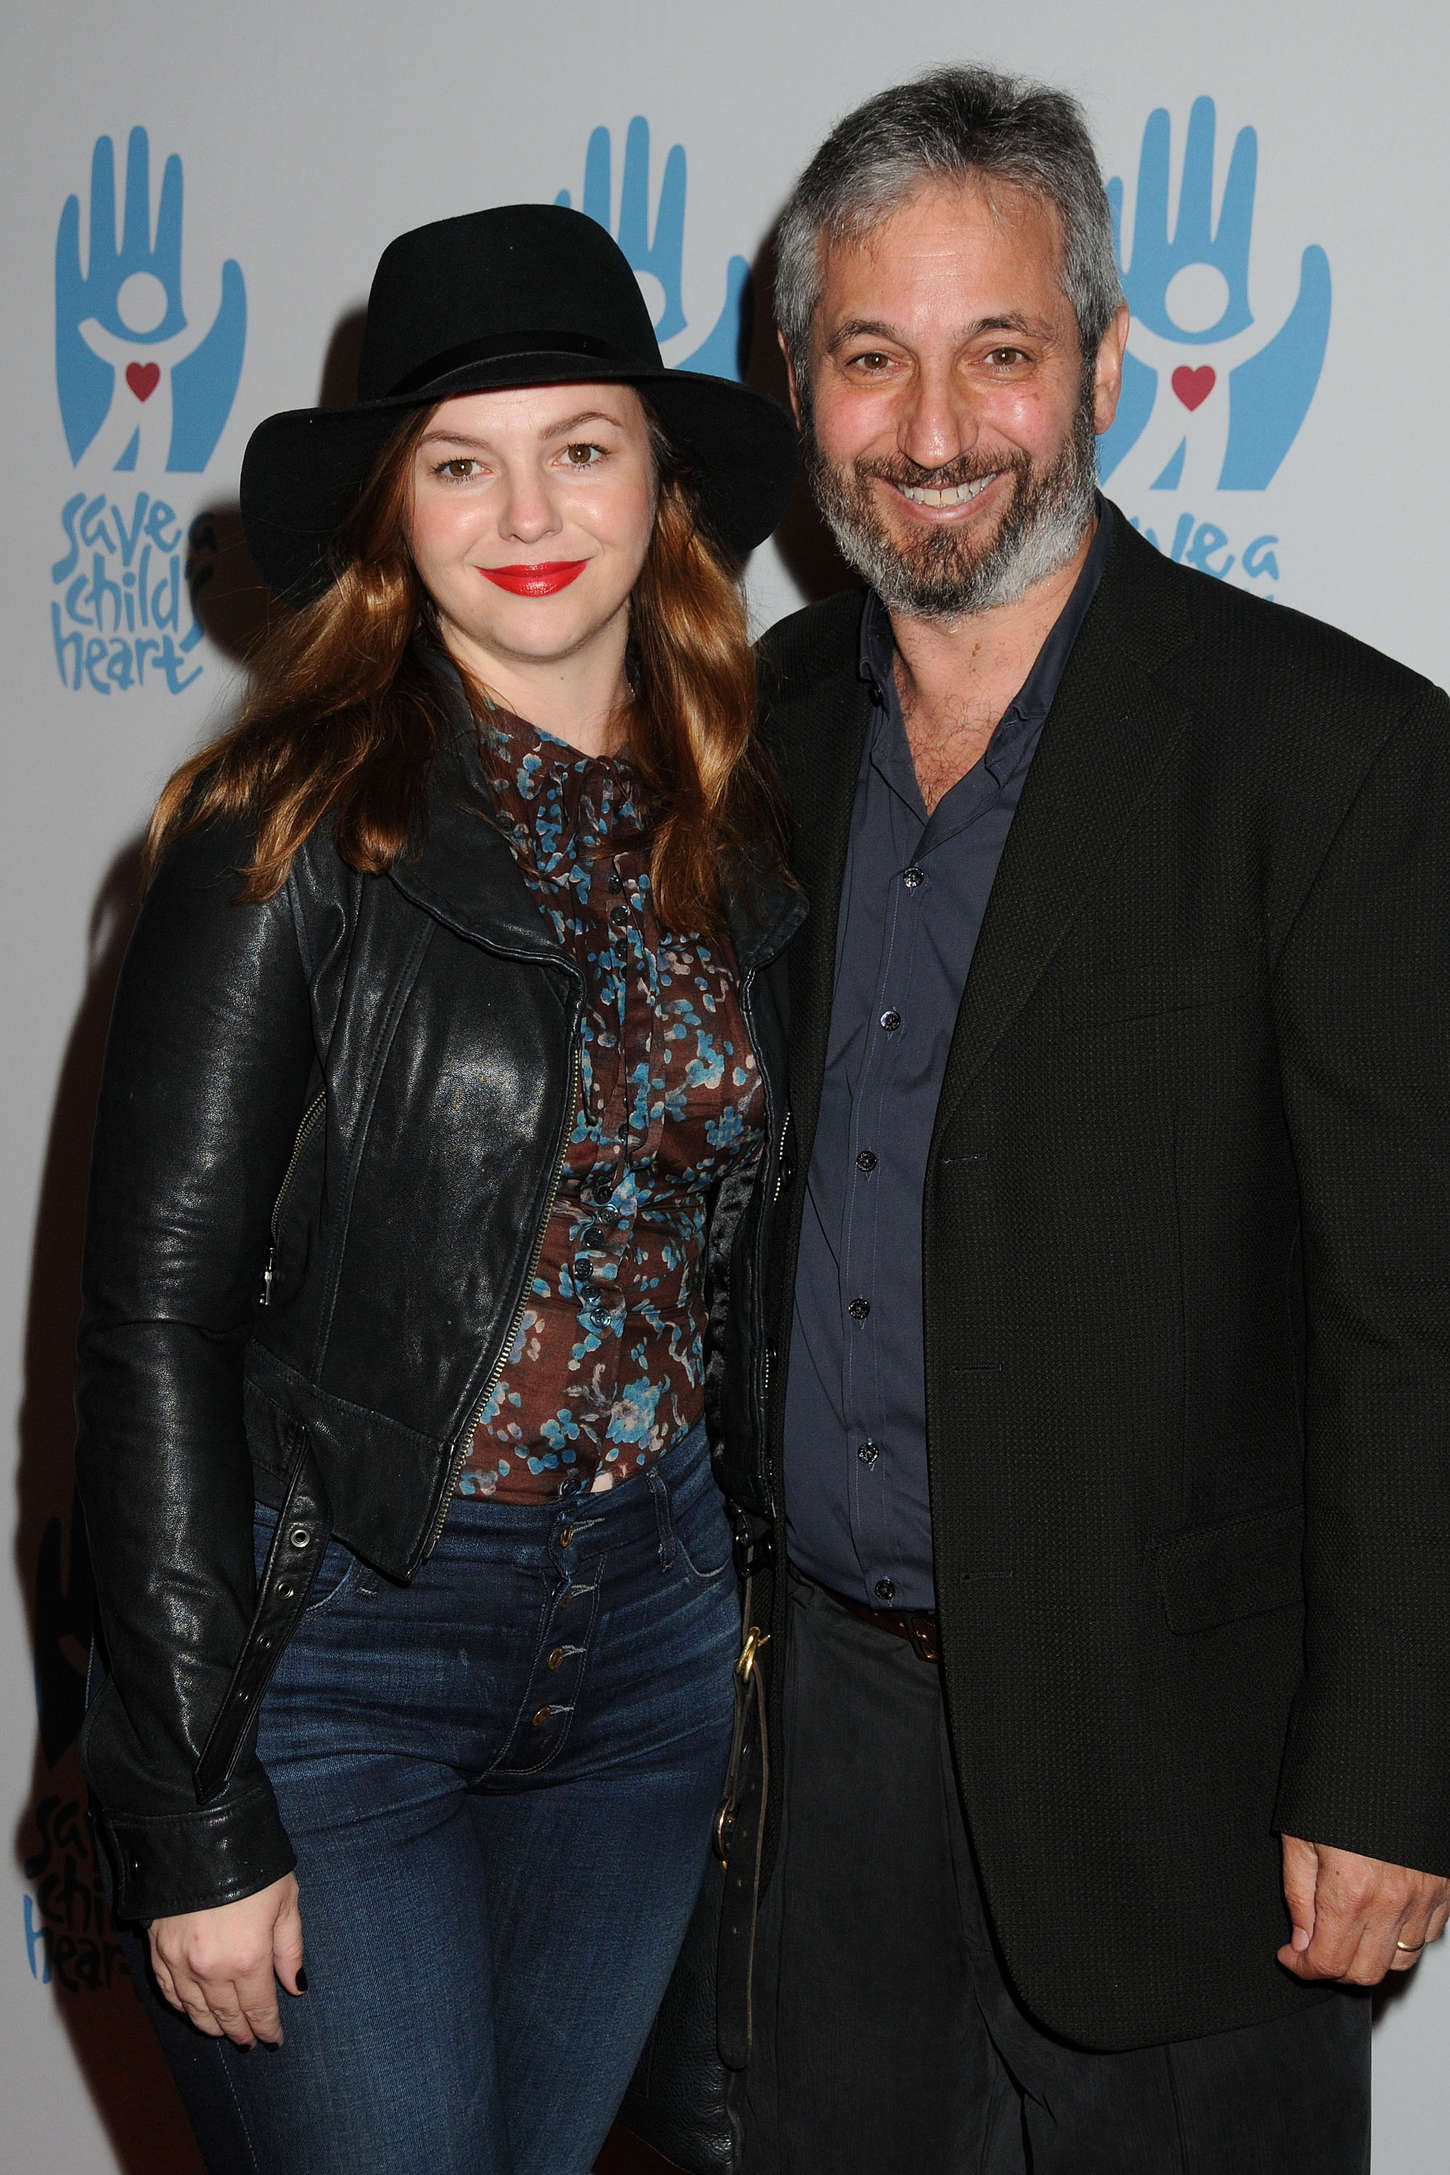 Amber Tamblyn Save A Childs Heart Celebration Honorary Ceremony in Los Angeles